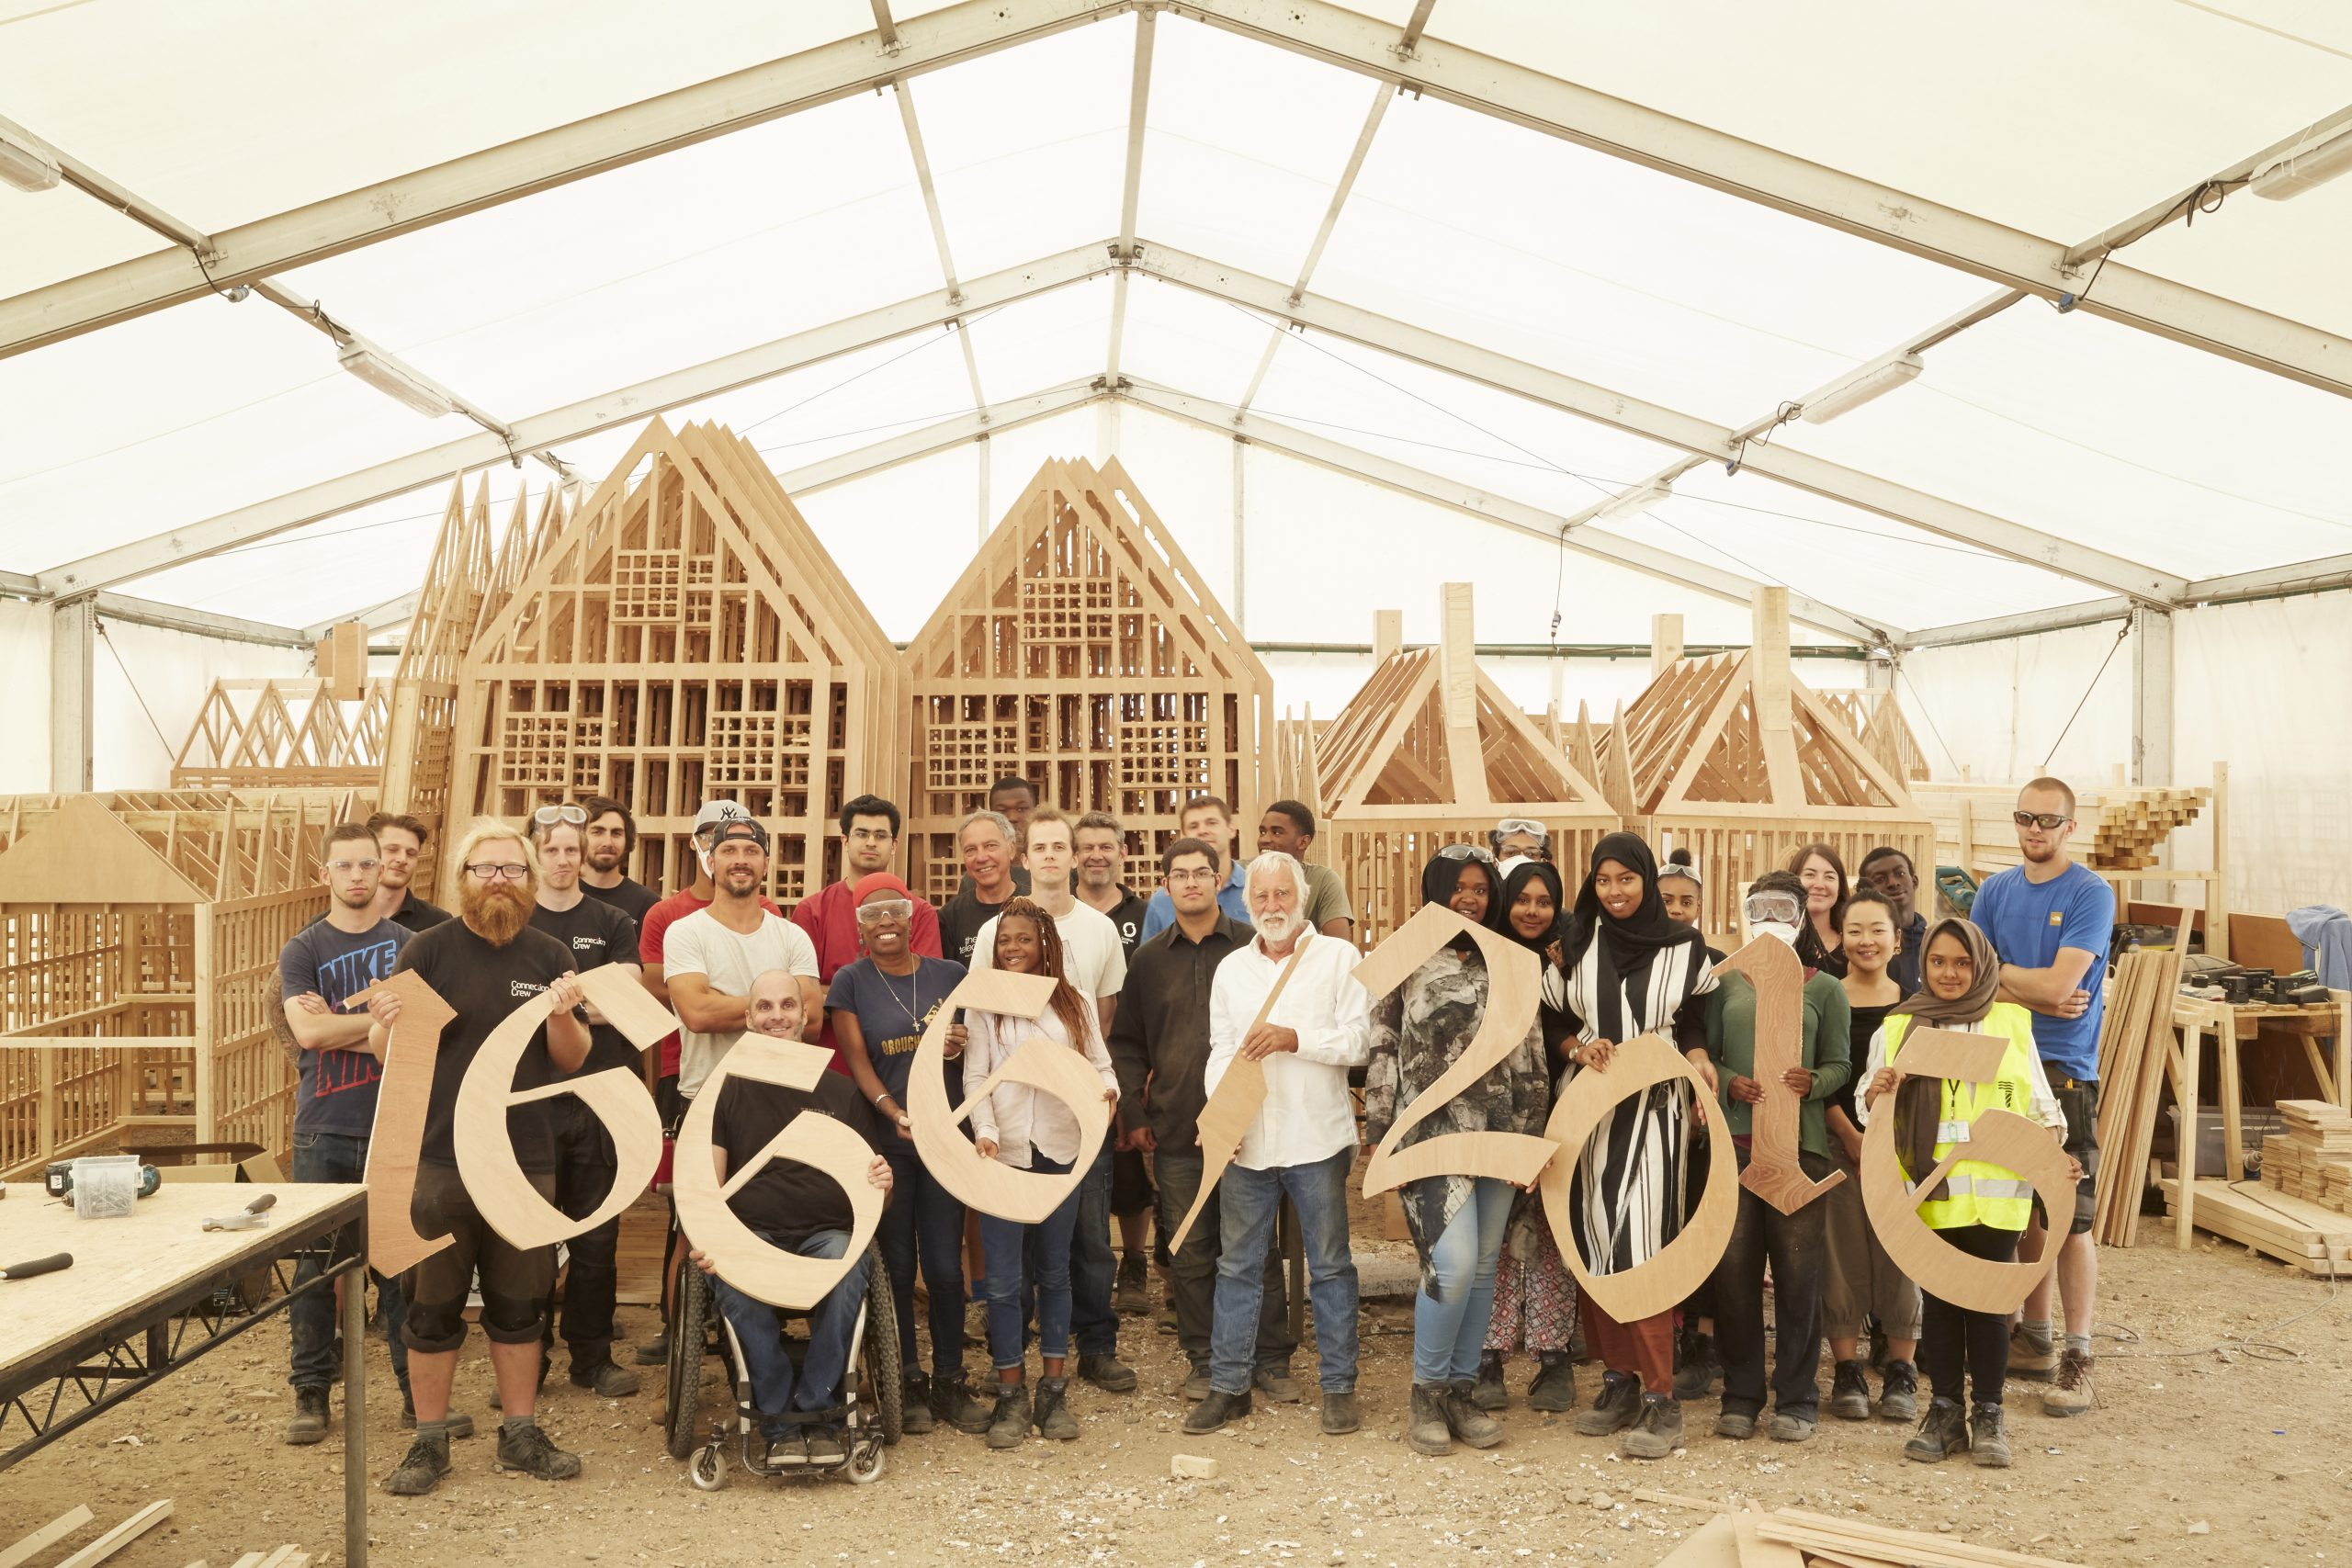 London 1666 participants and artist David Best holding up wooden numbers which say